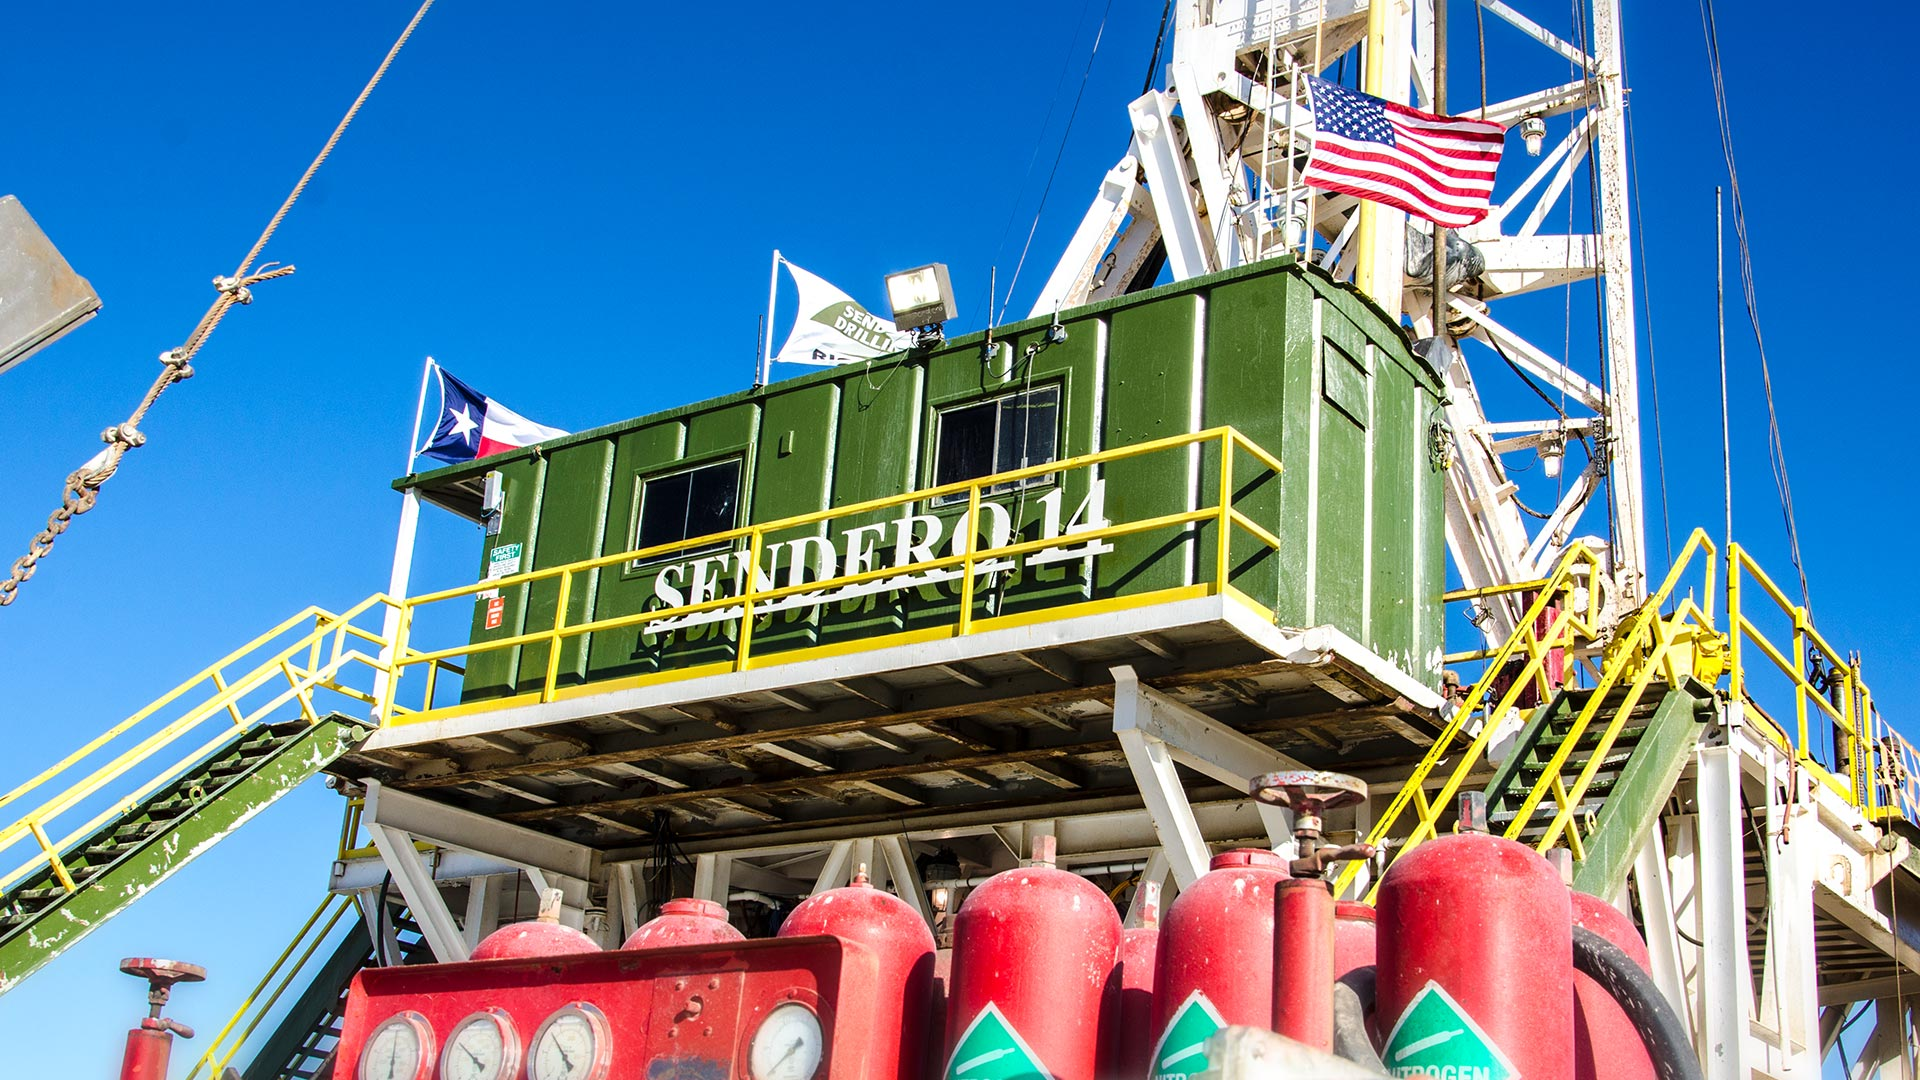 Sendero Drilling | Land Drilling Contractor for Oil and Natural Gas